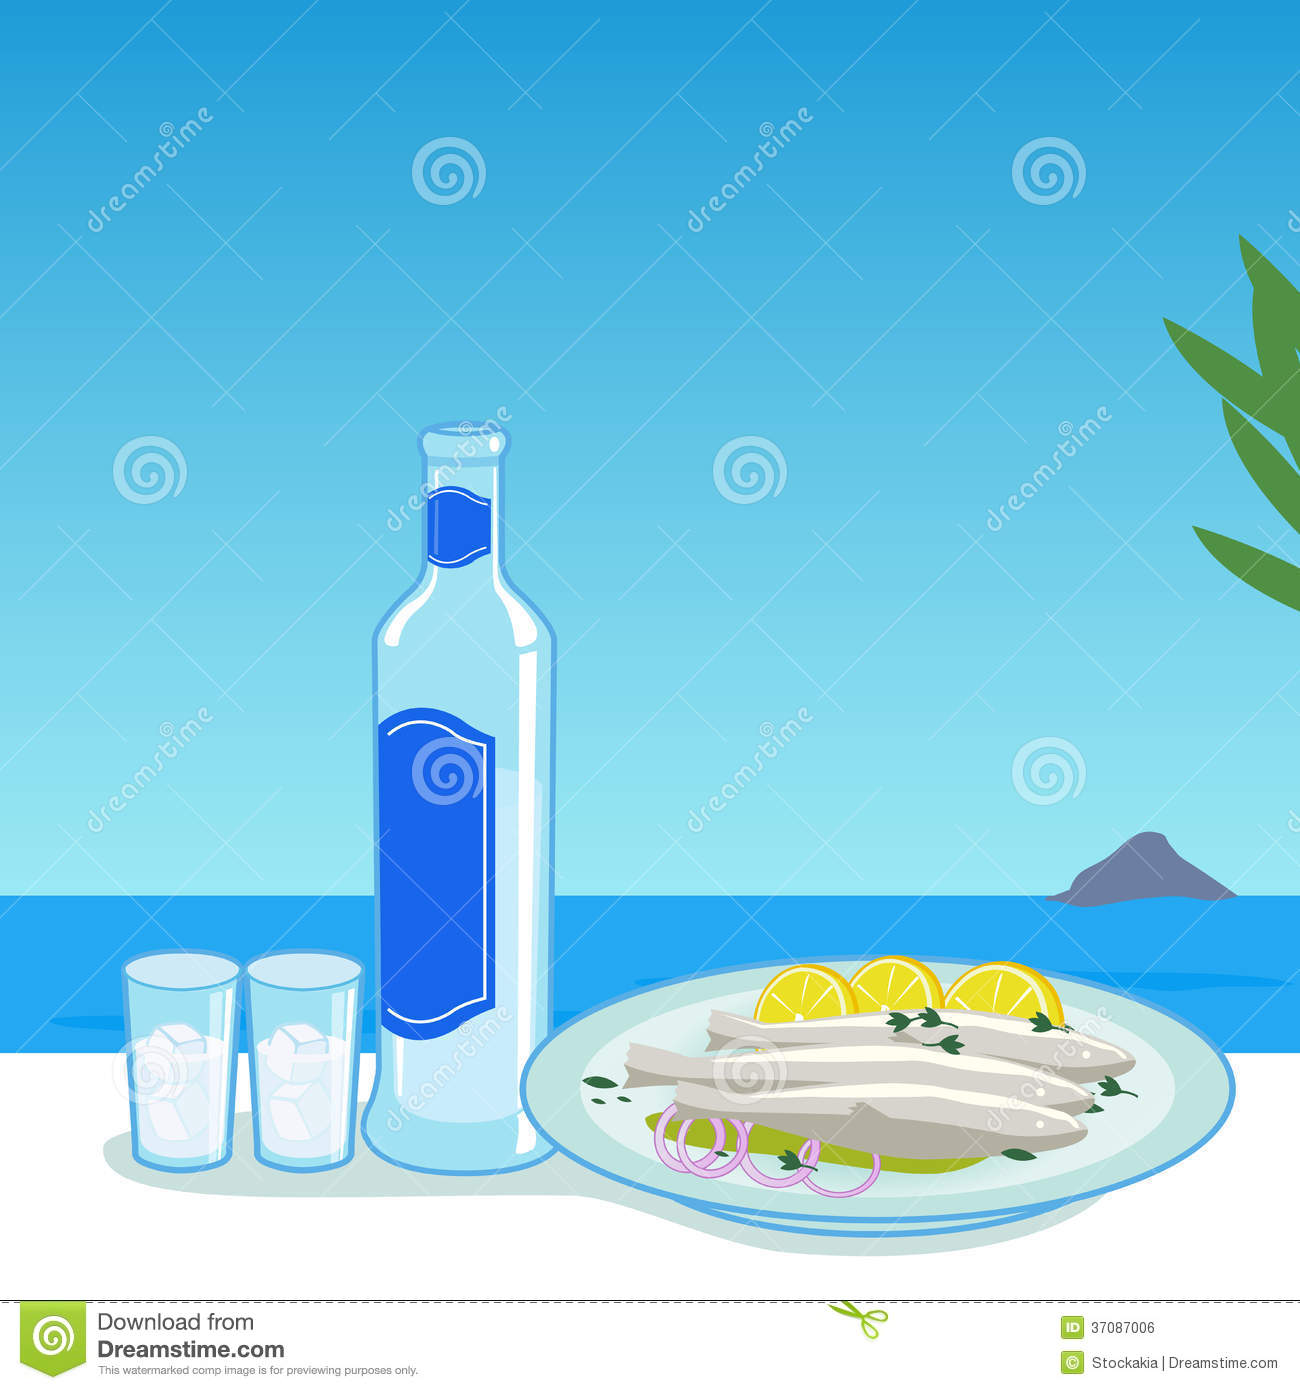 Ouzo And Fish In Greece Stock Vector. Illustration Of